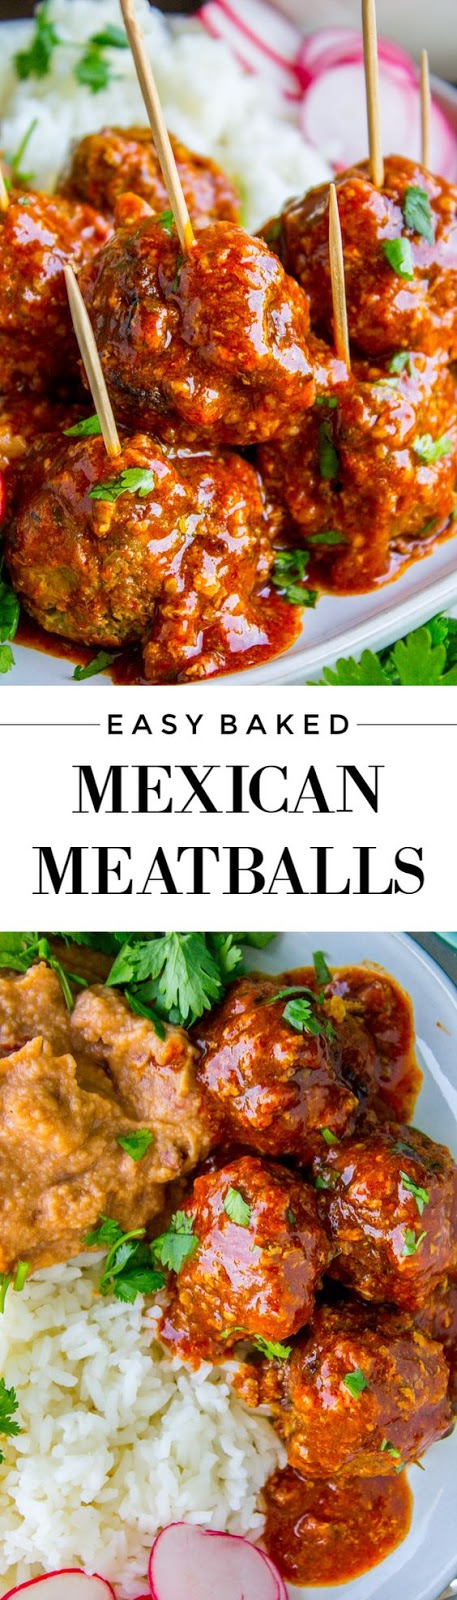 Easy Baked Mexican Meatballs